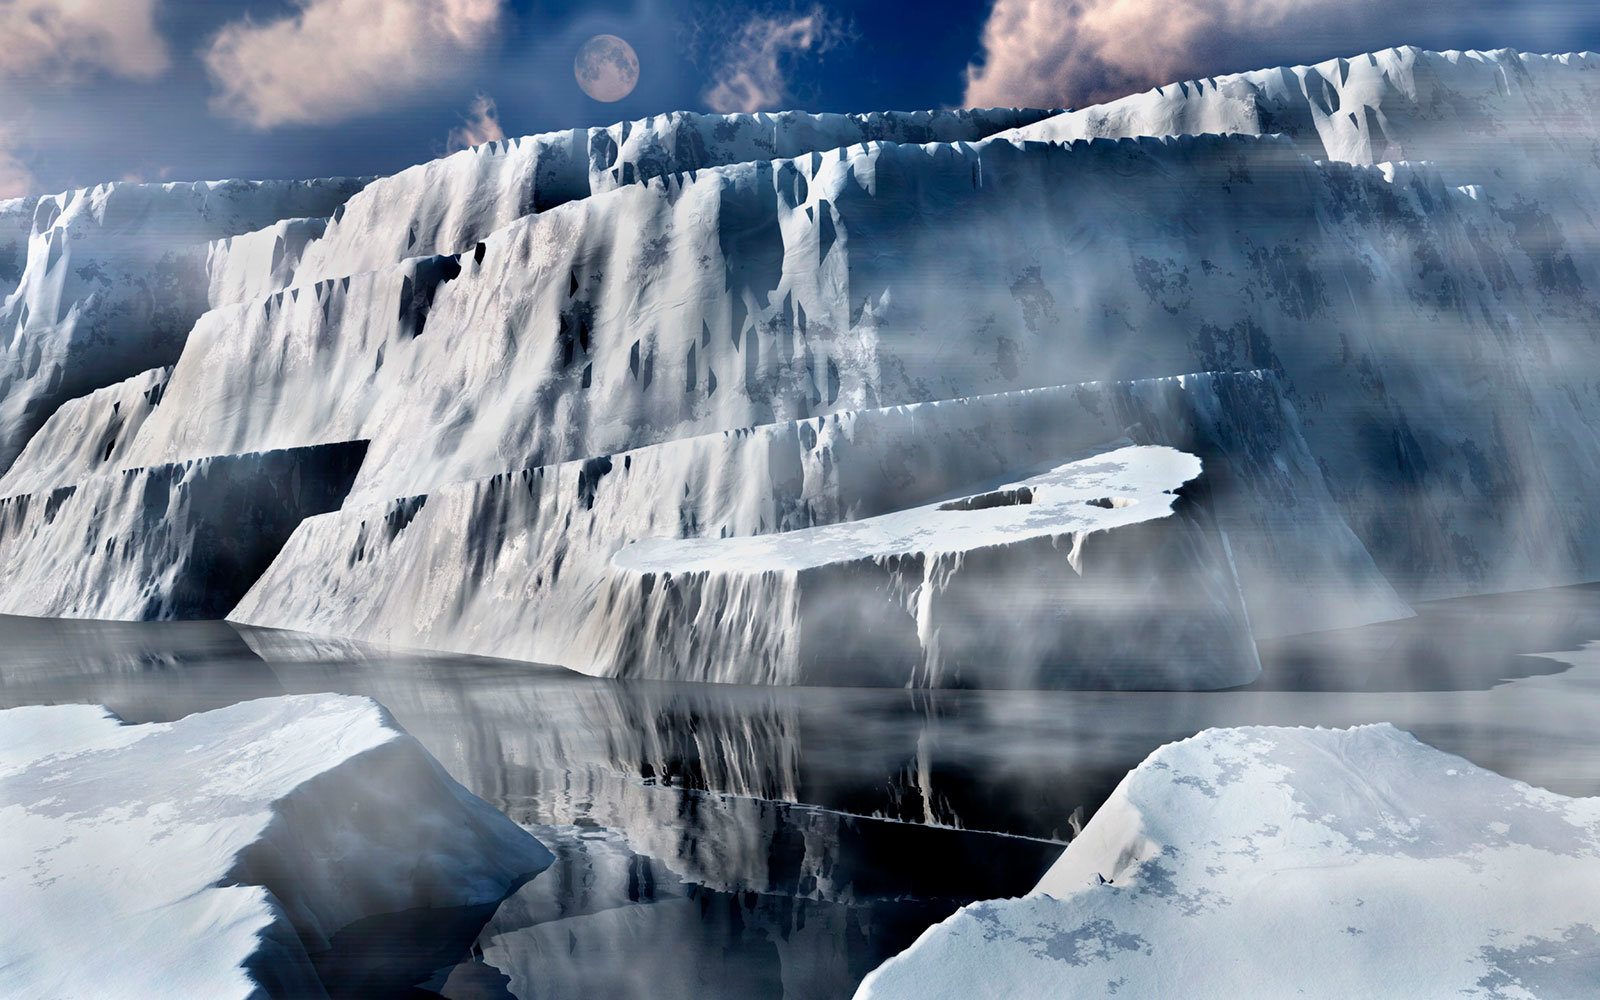 Frozen Wall, Ice and Snow